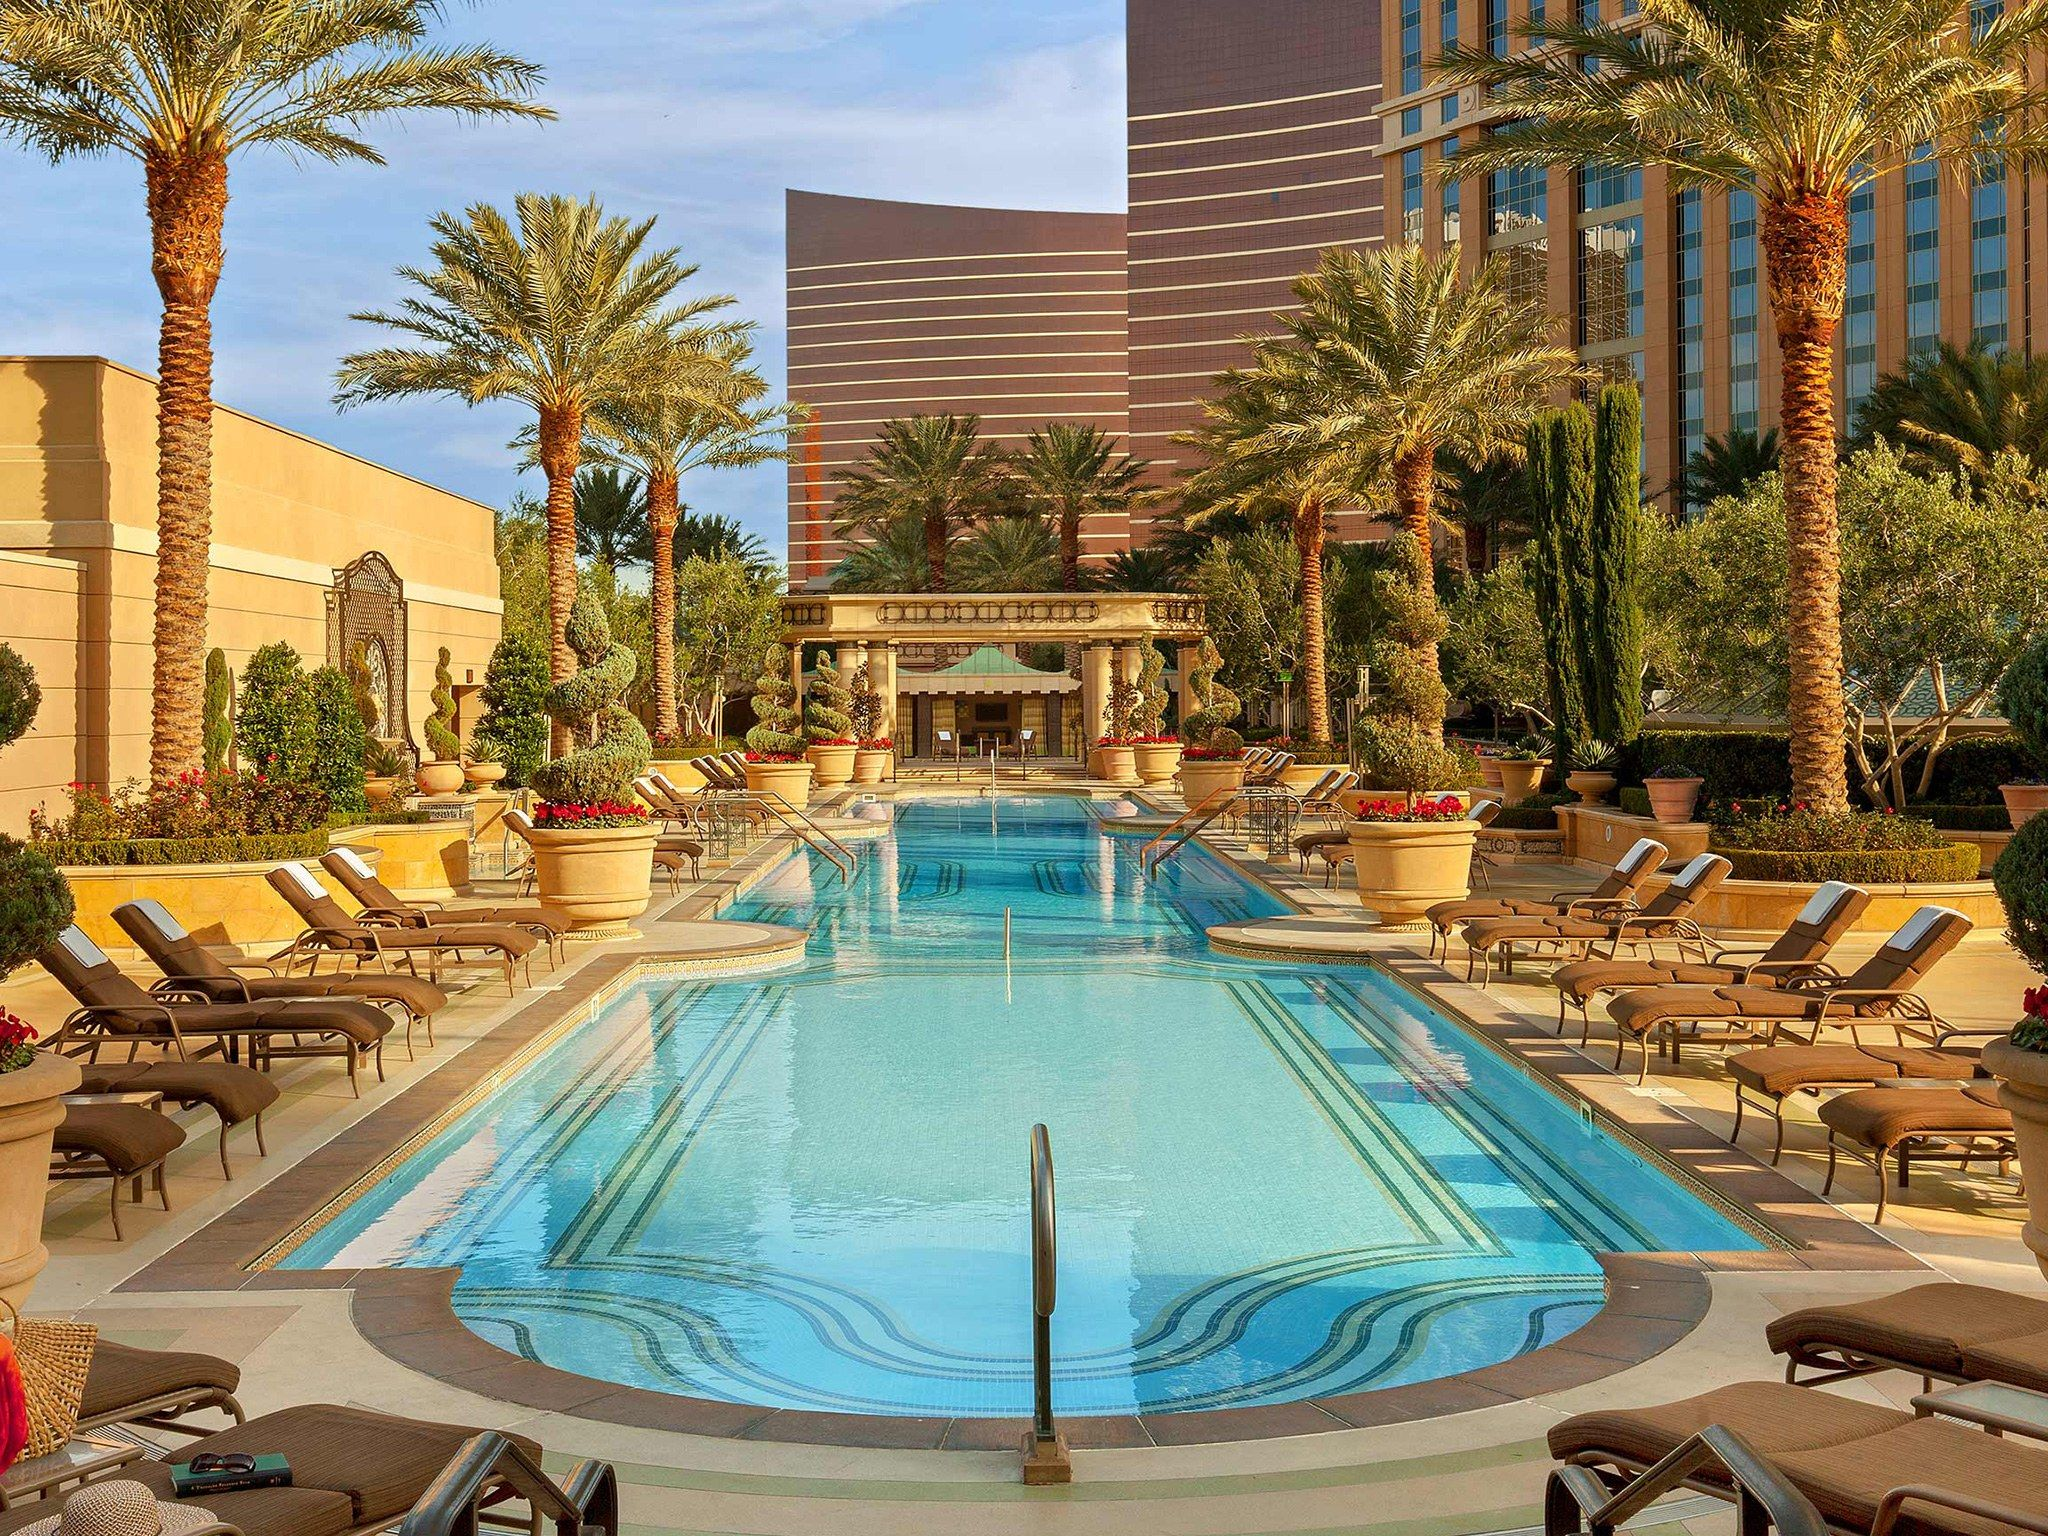 Condé Nast Traveler Readers Named These The Best Hotels In Las Vegas 2016